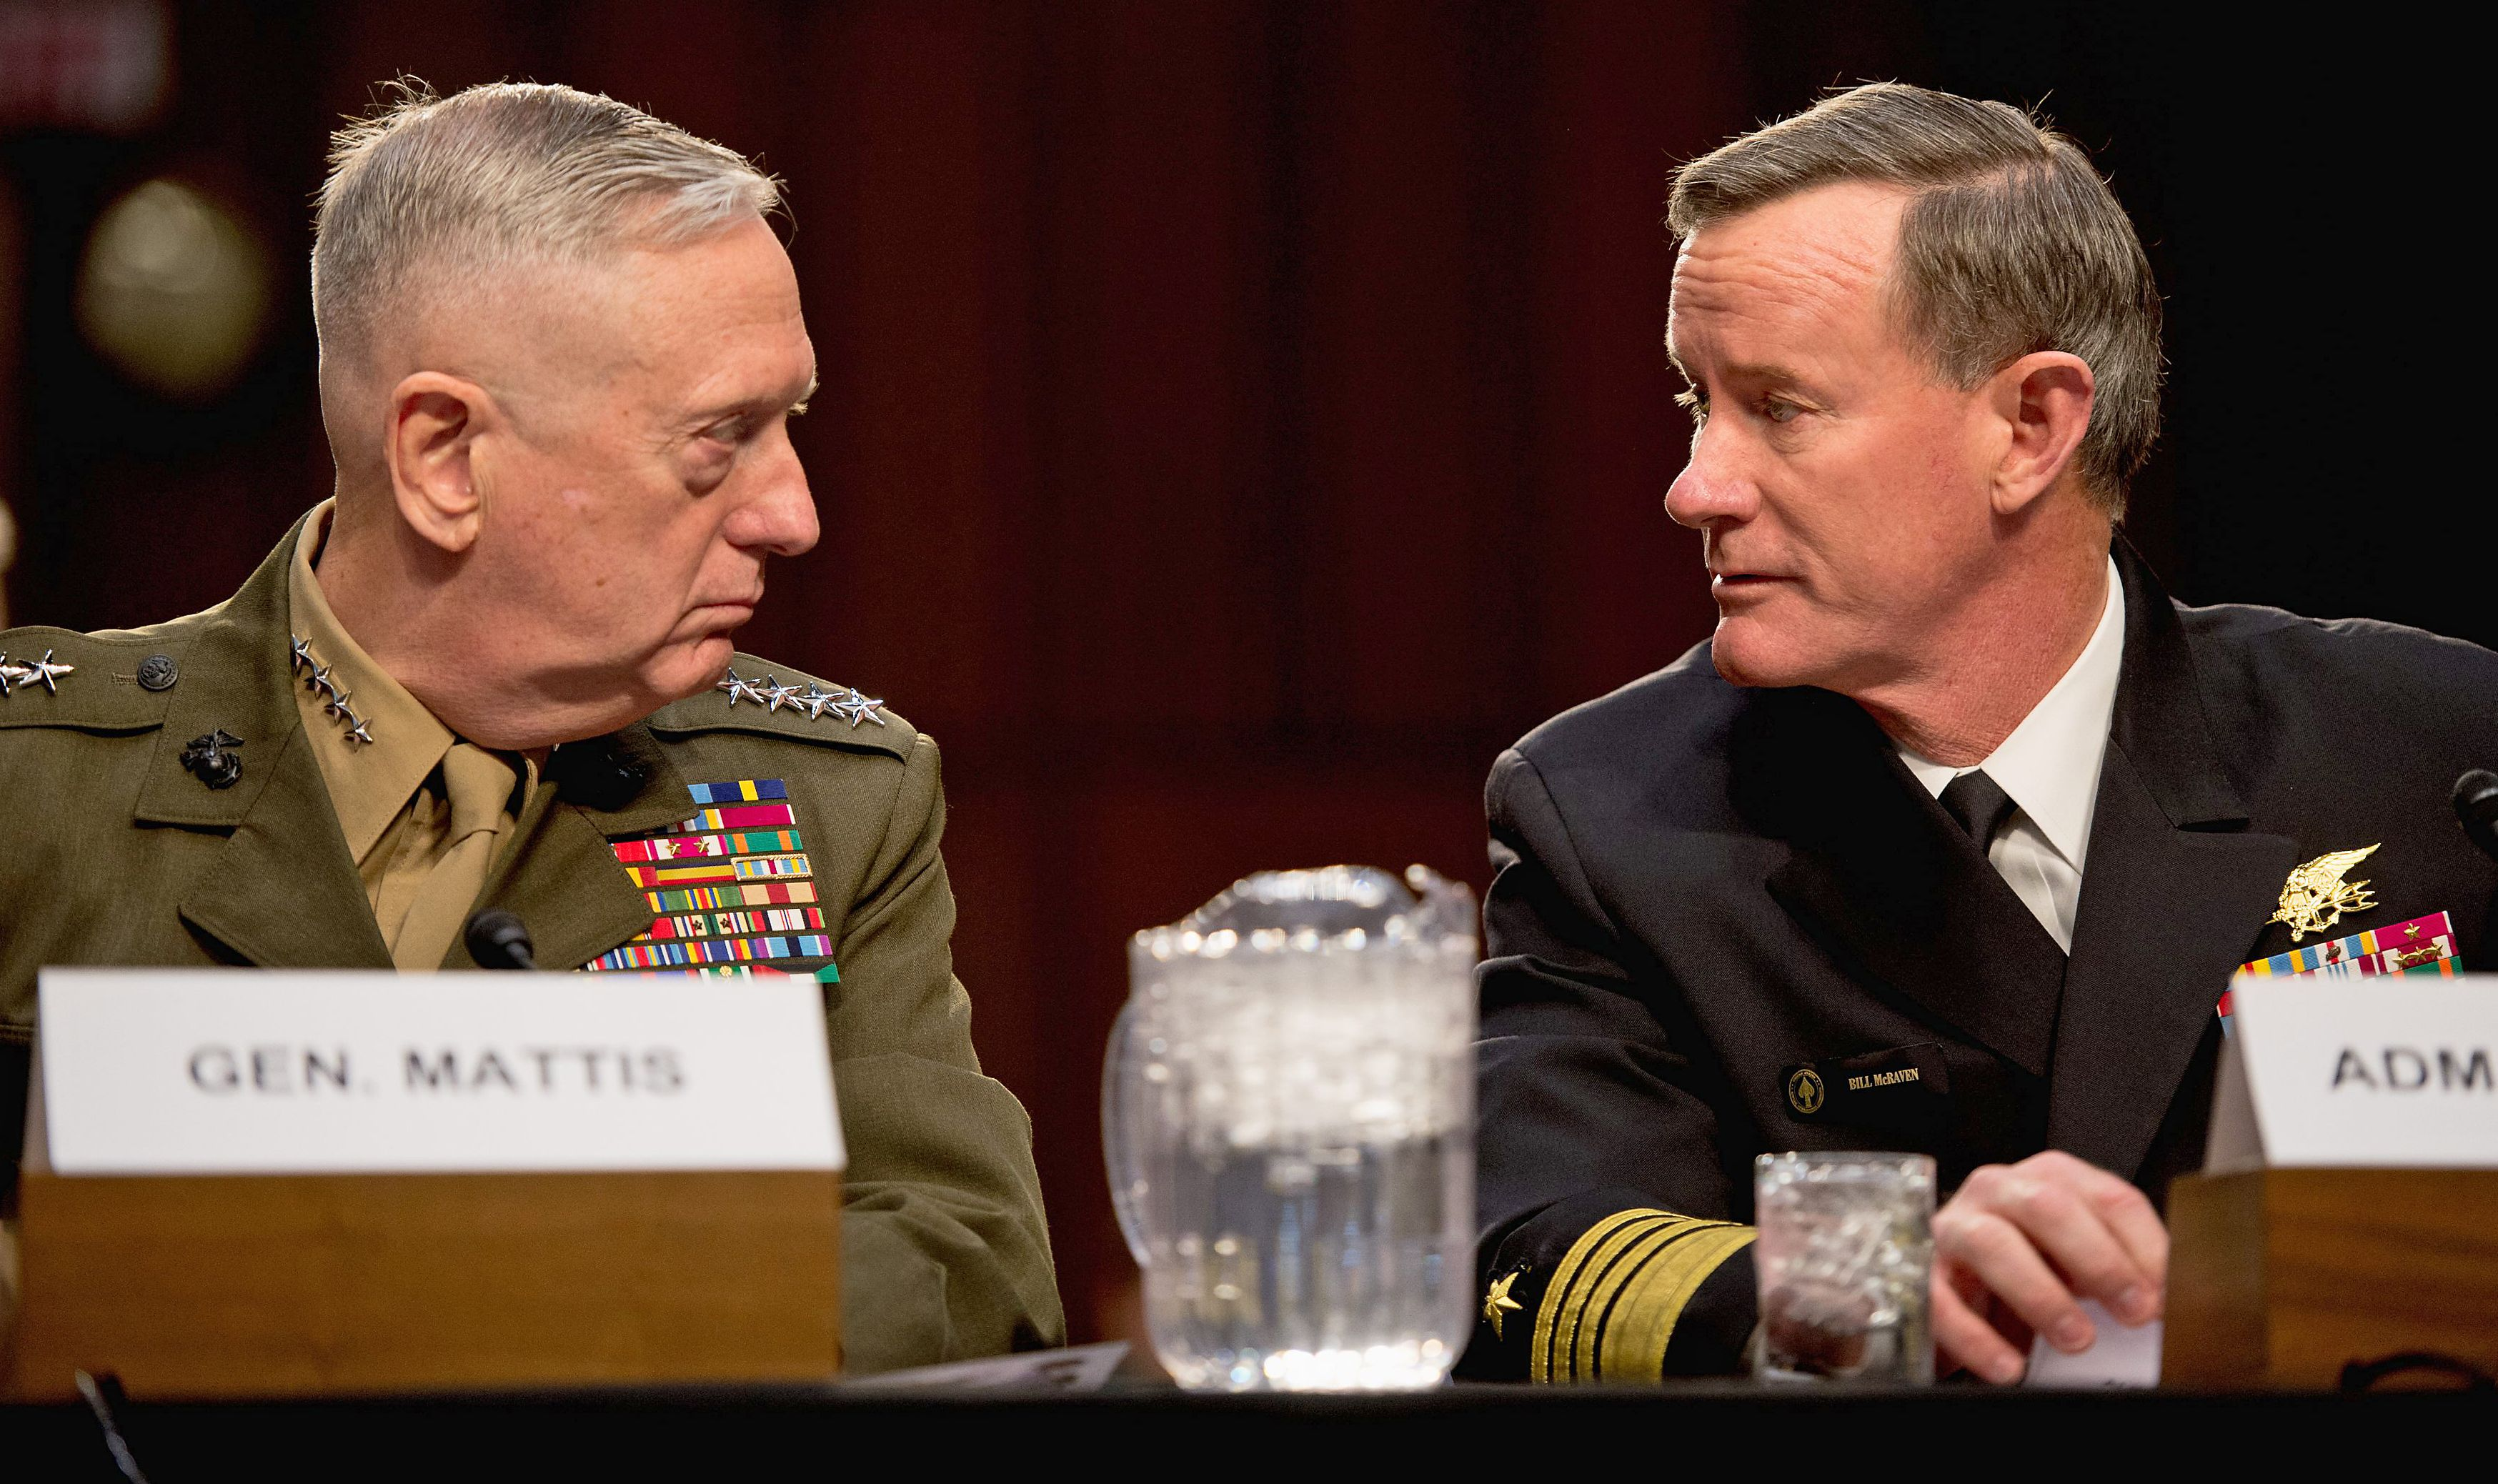 Admiral william h mcraven